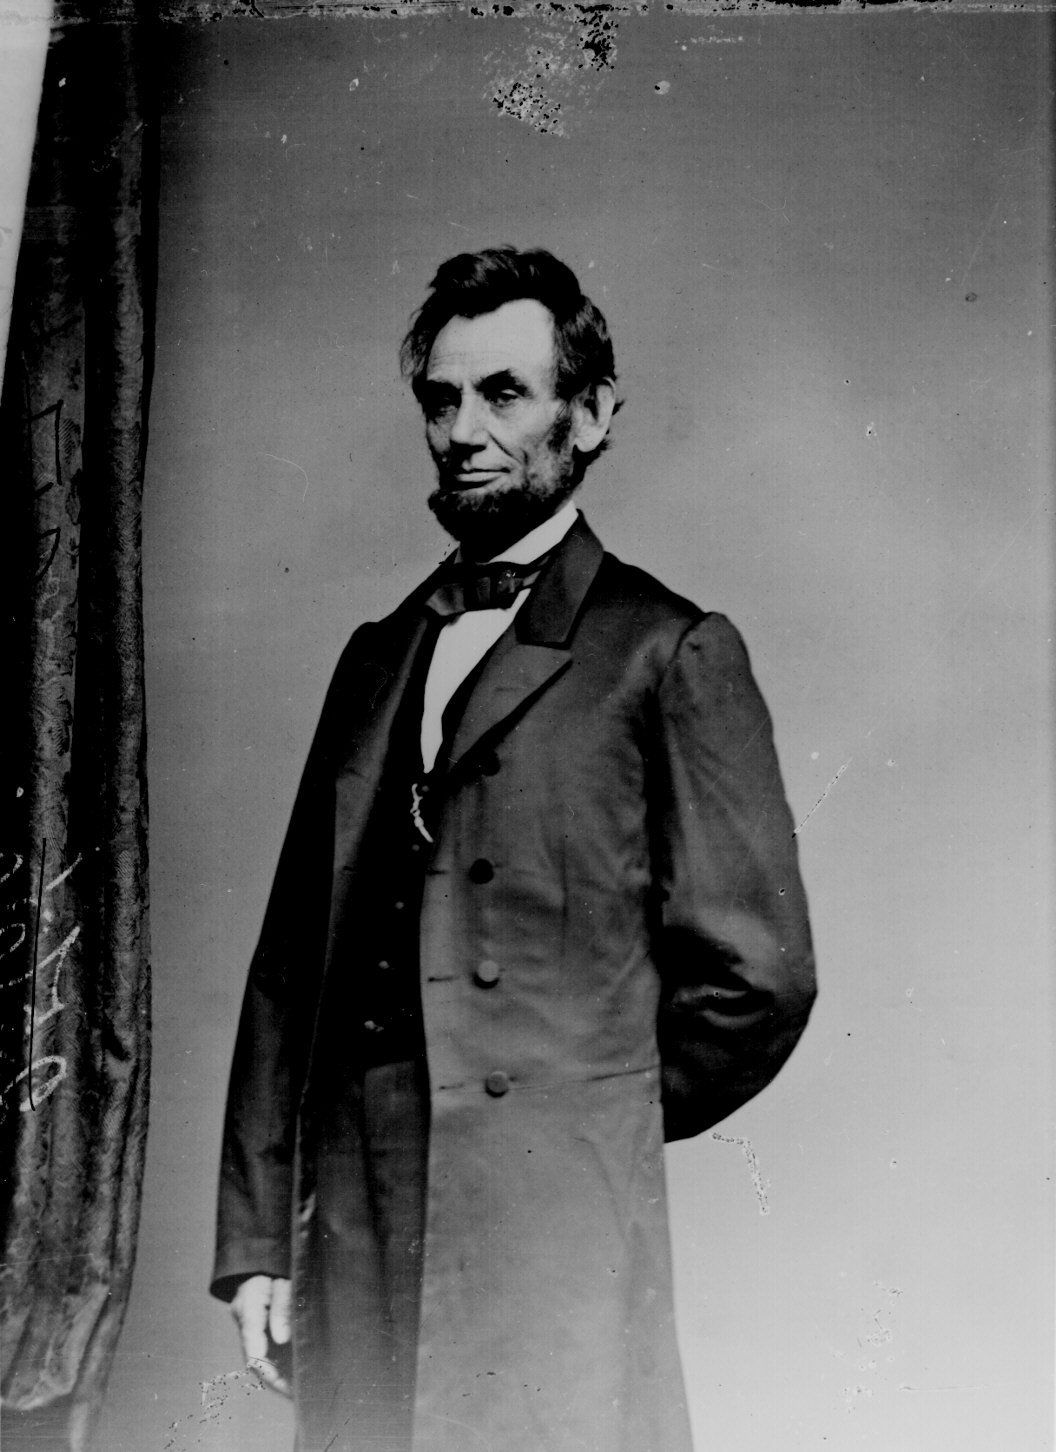 account of the presidency of abraham lincoln A fresh account of a time when the american presidency briefly became an instrument for realizing the highest promise of the republic--andrew delbanco, editor of the portable abraham lincoln.